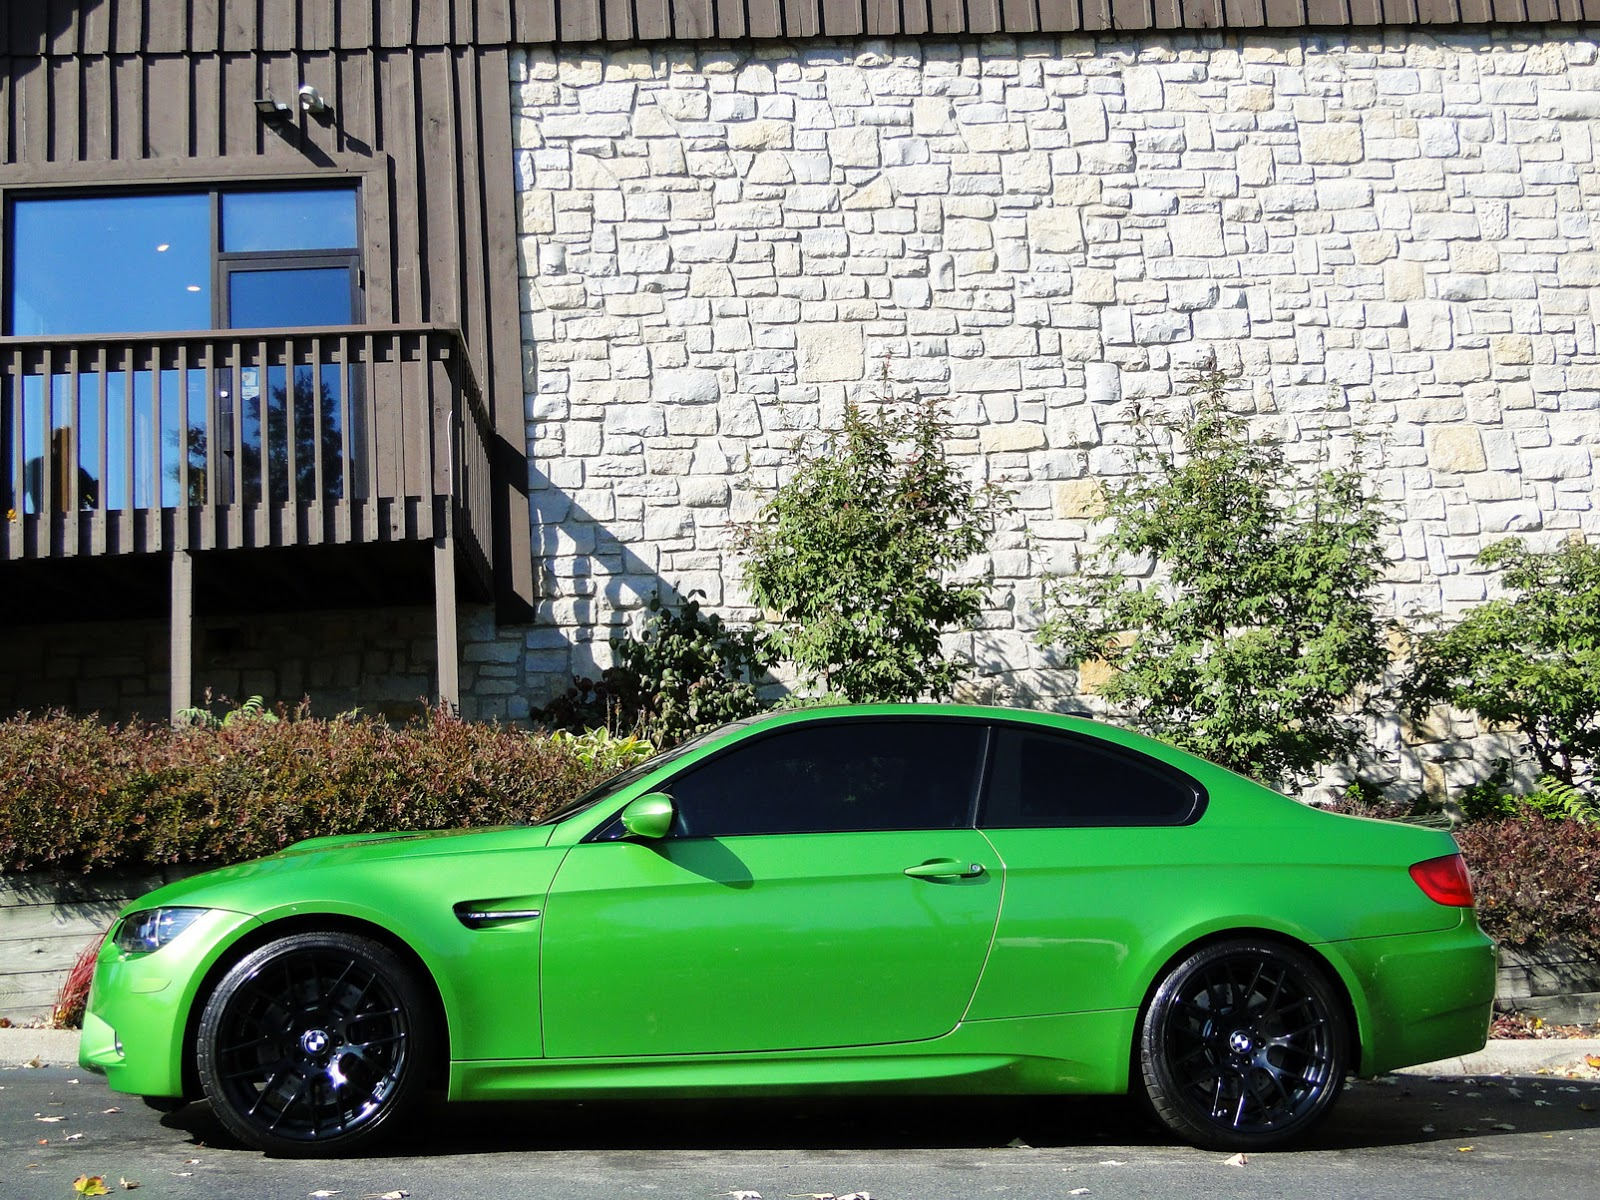 Individual Java Green Bmw E92 M3 Up For Sale Autoevolution